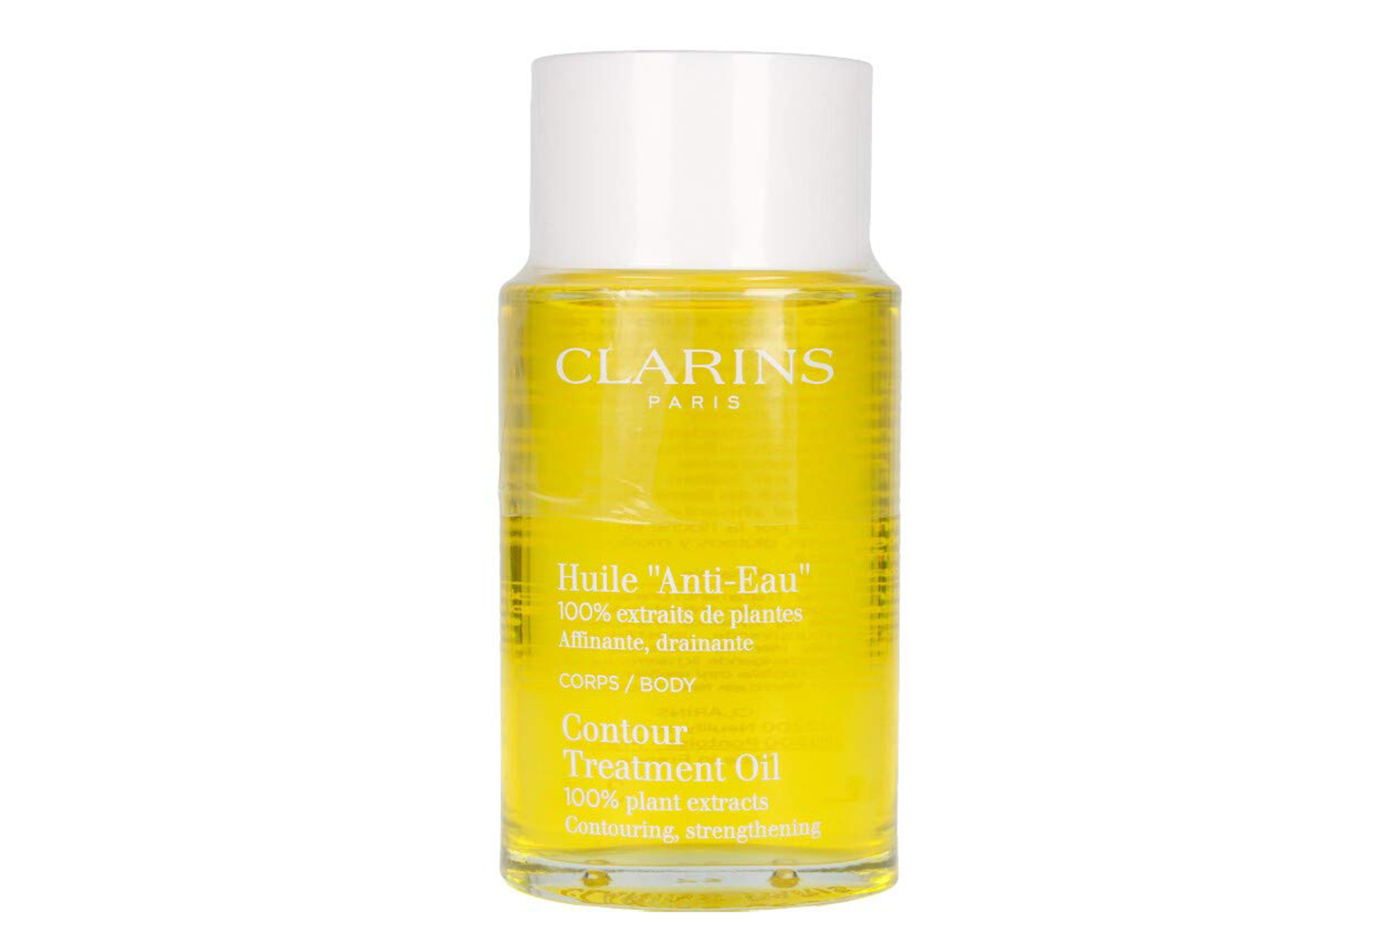 Pamper your clients with Clarins body treatment oil